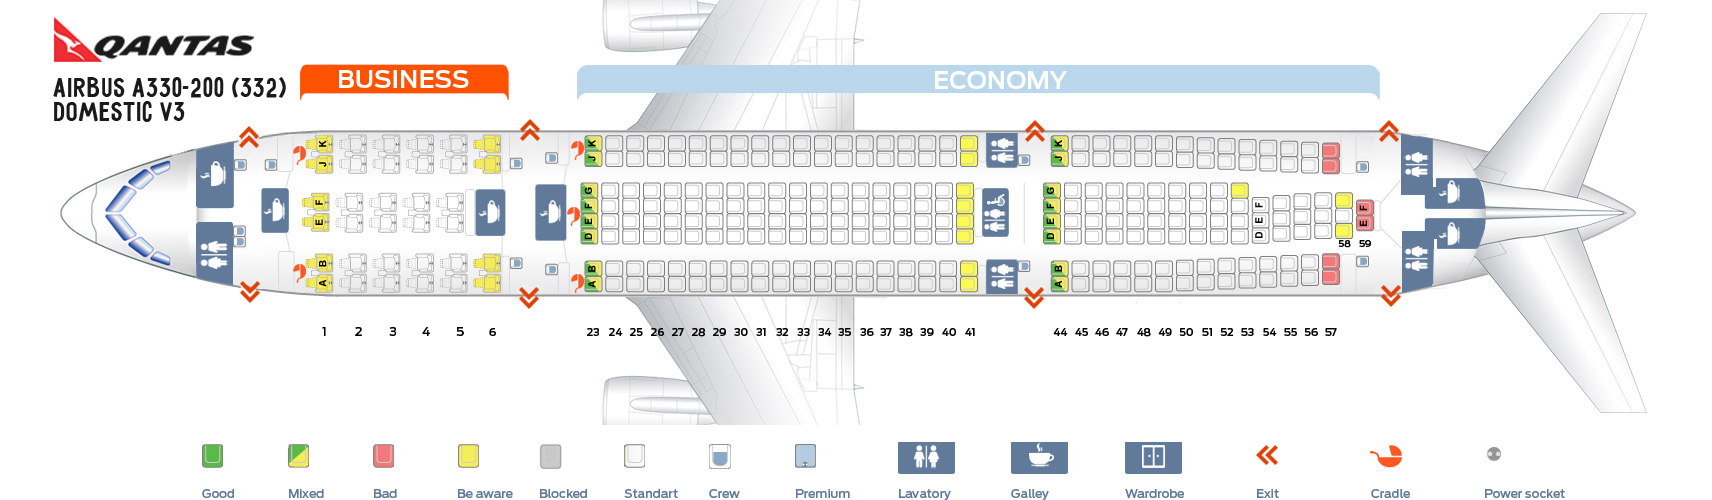 Seat Map Airbus A330-200 Domestic V3 Qantas Airways